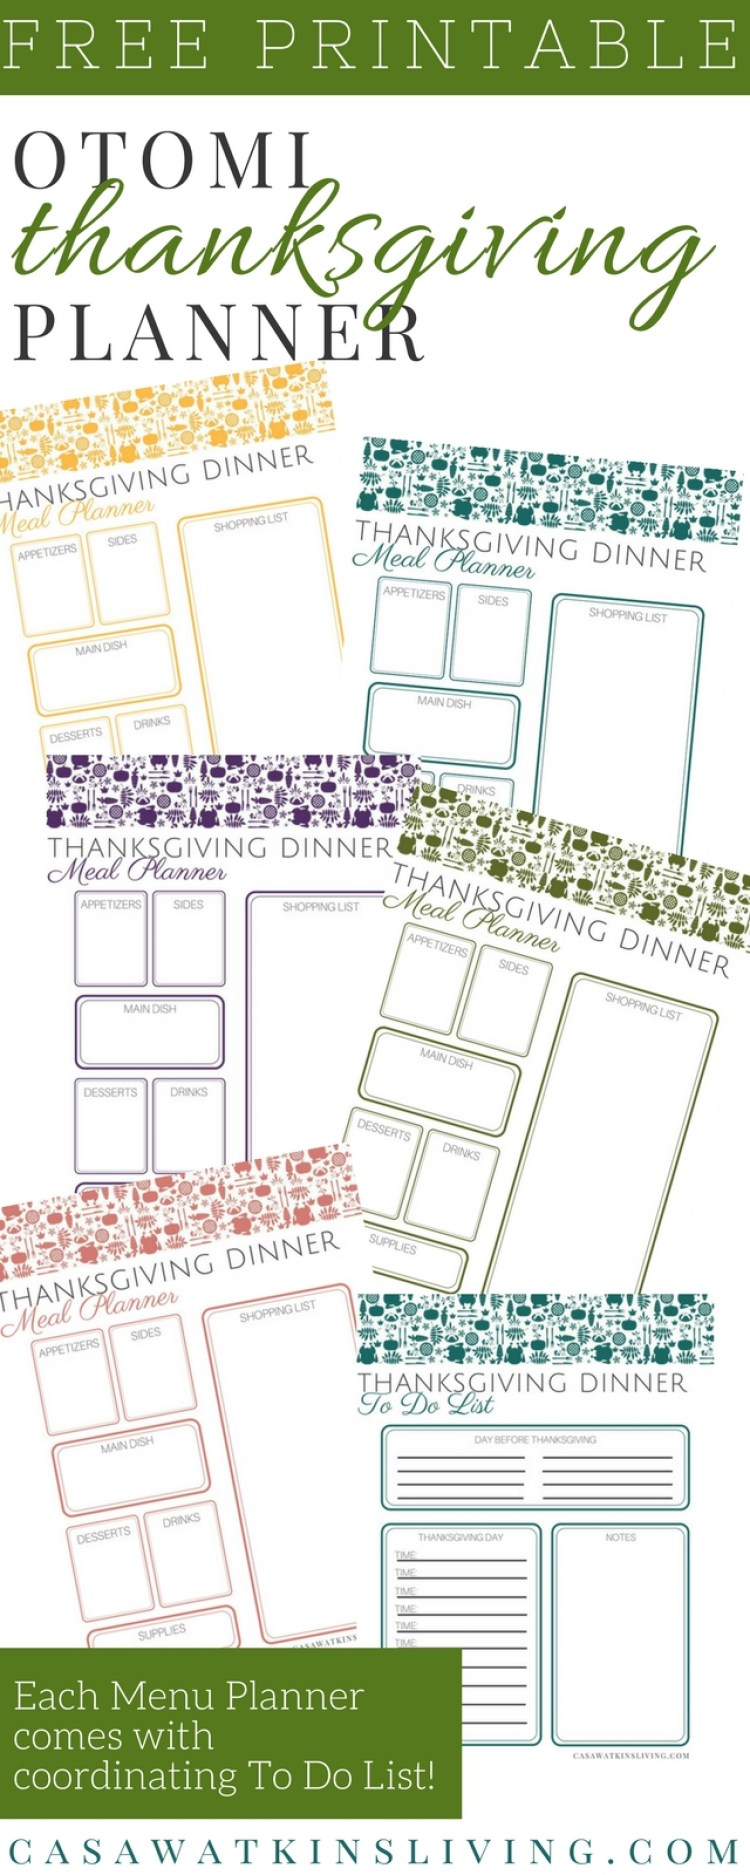 free Otomi thanksgiving planner in 5 colors!